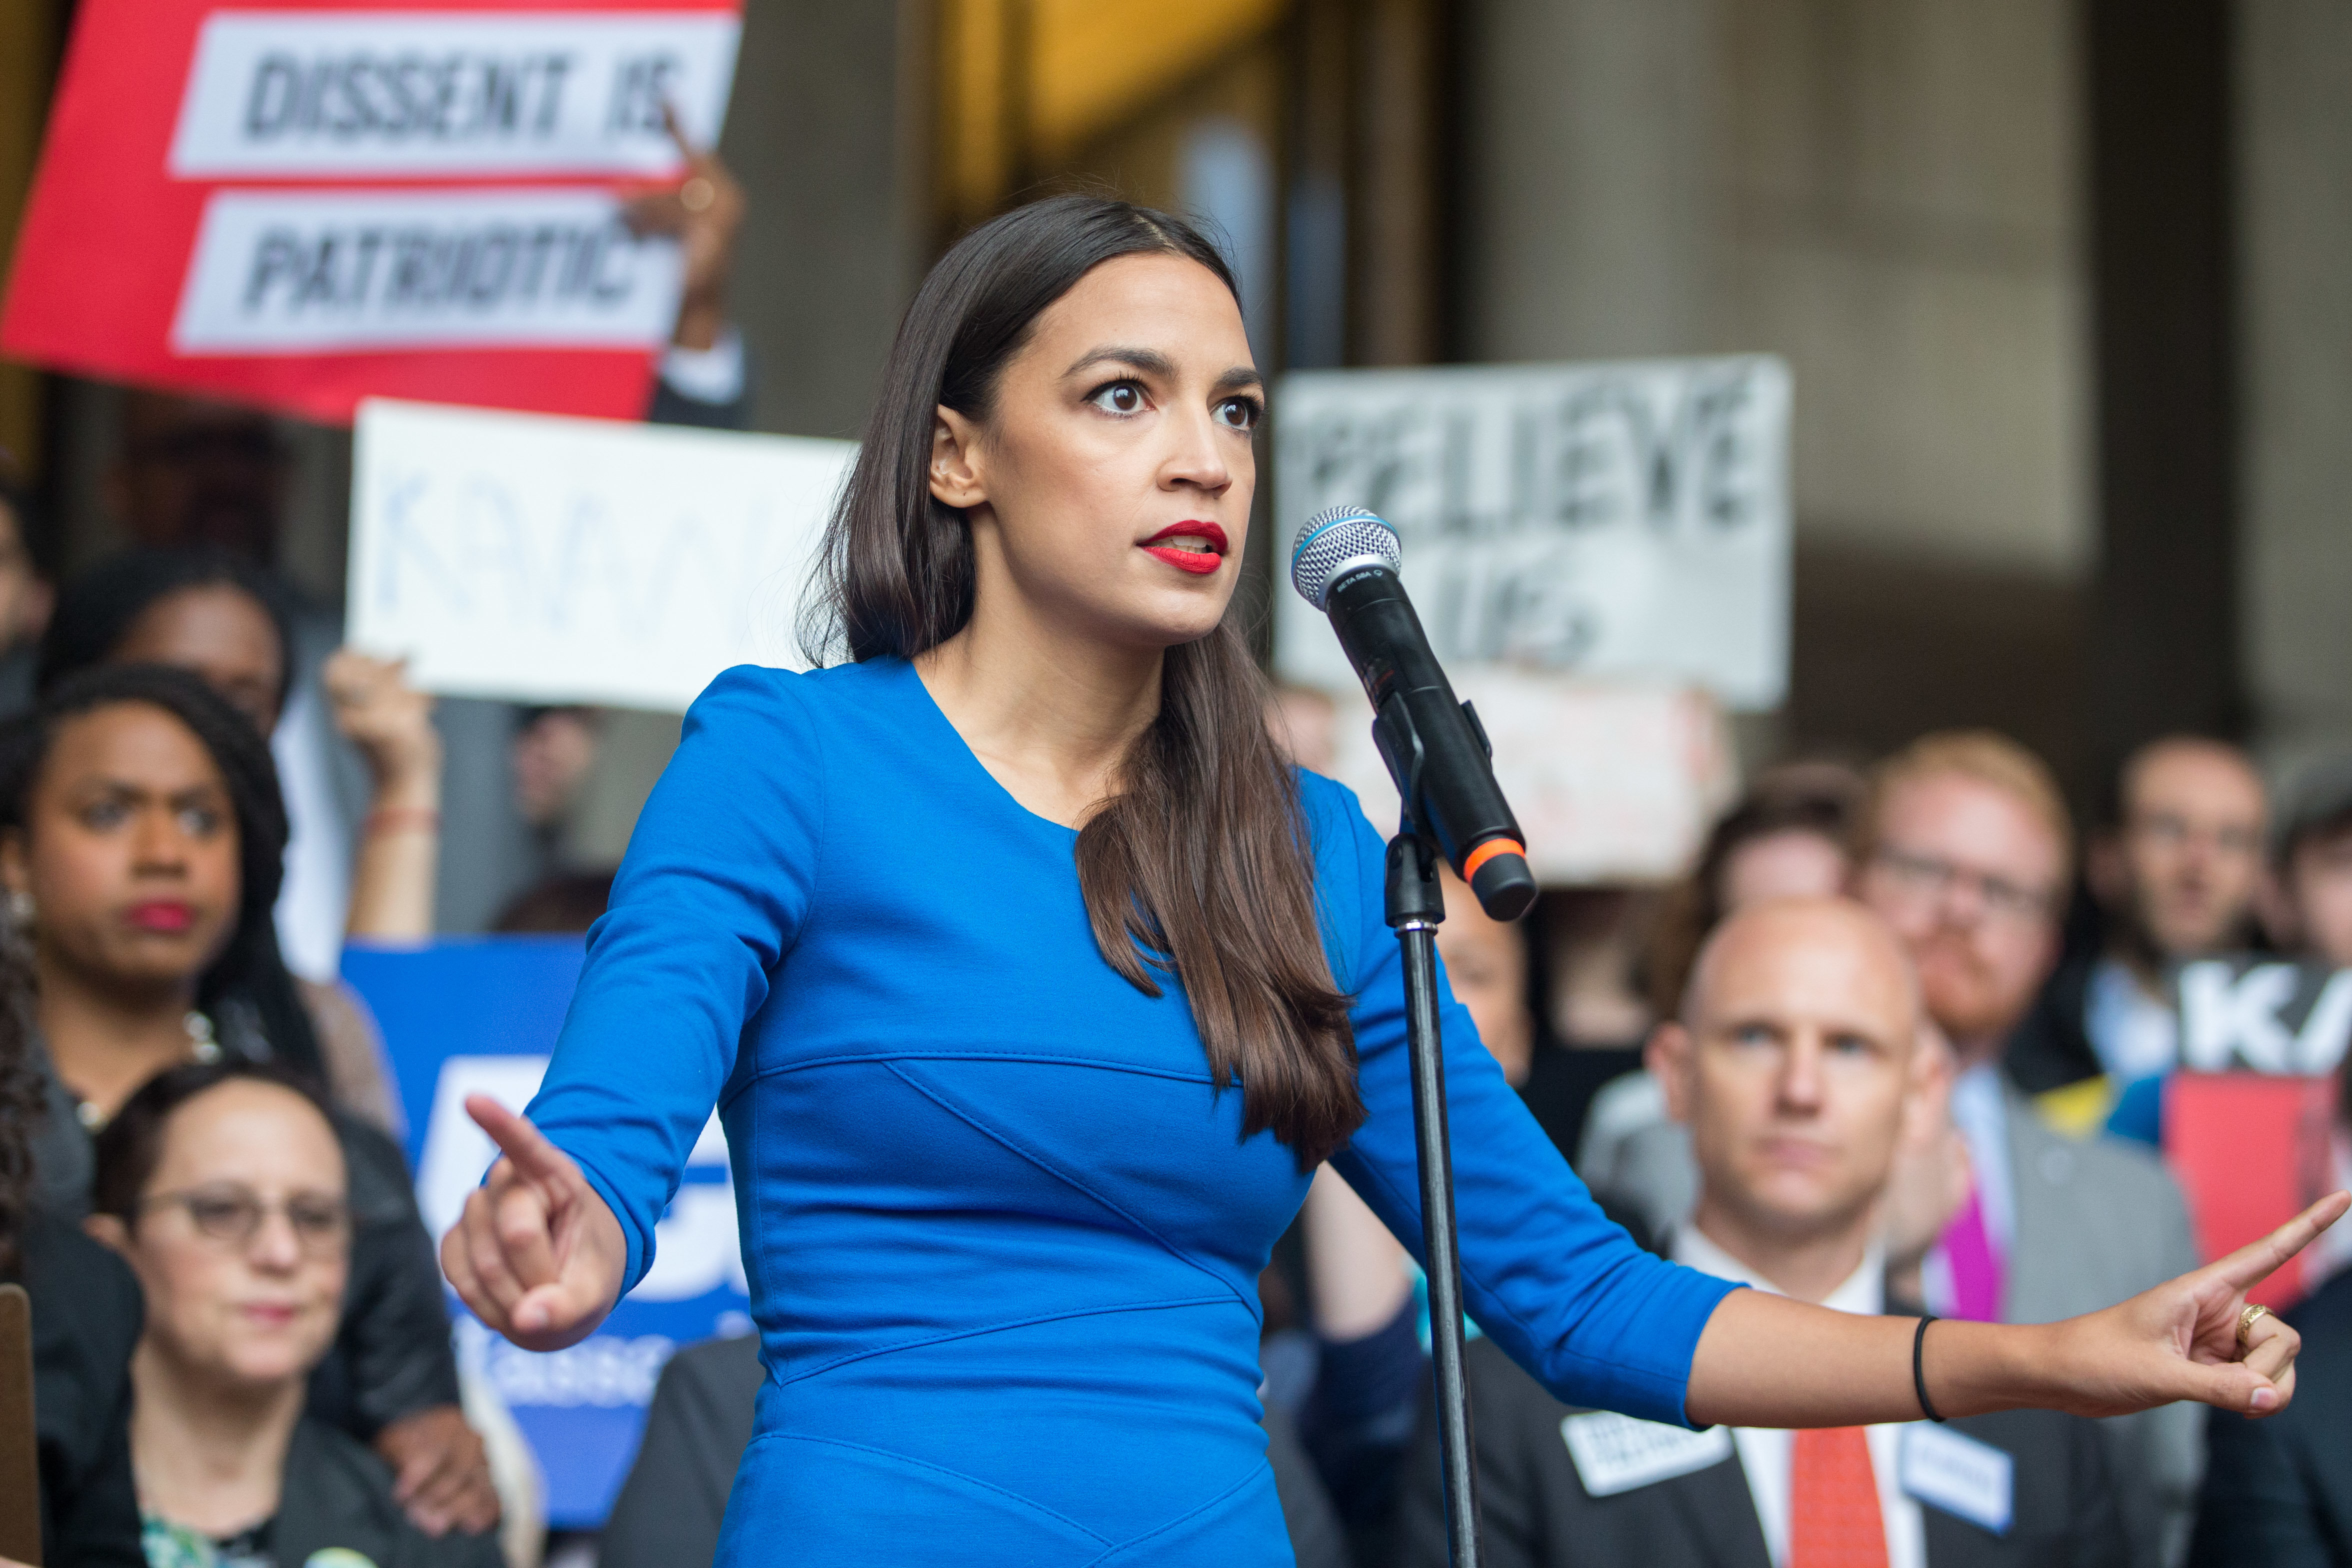 Alexandria Ocasio-Cortez accused of ethics violation after Twitter user makes unusual discovery